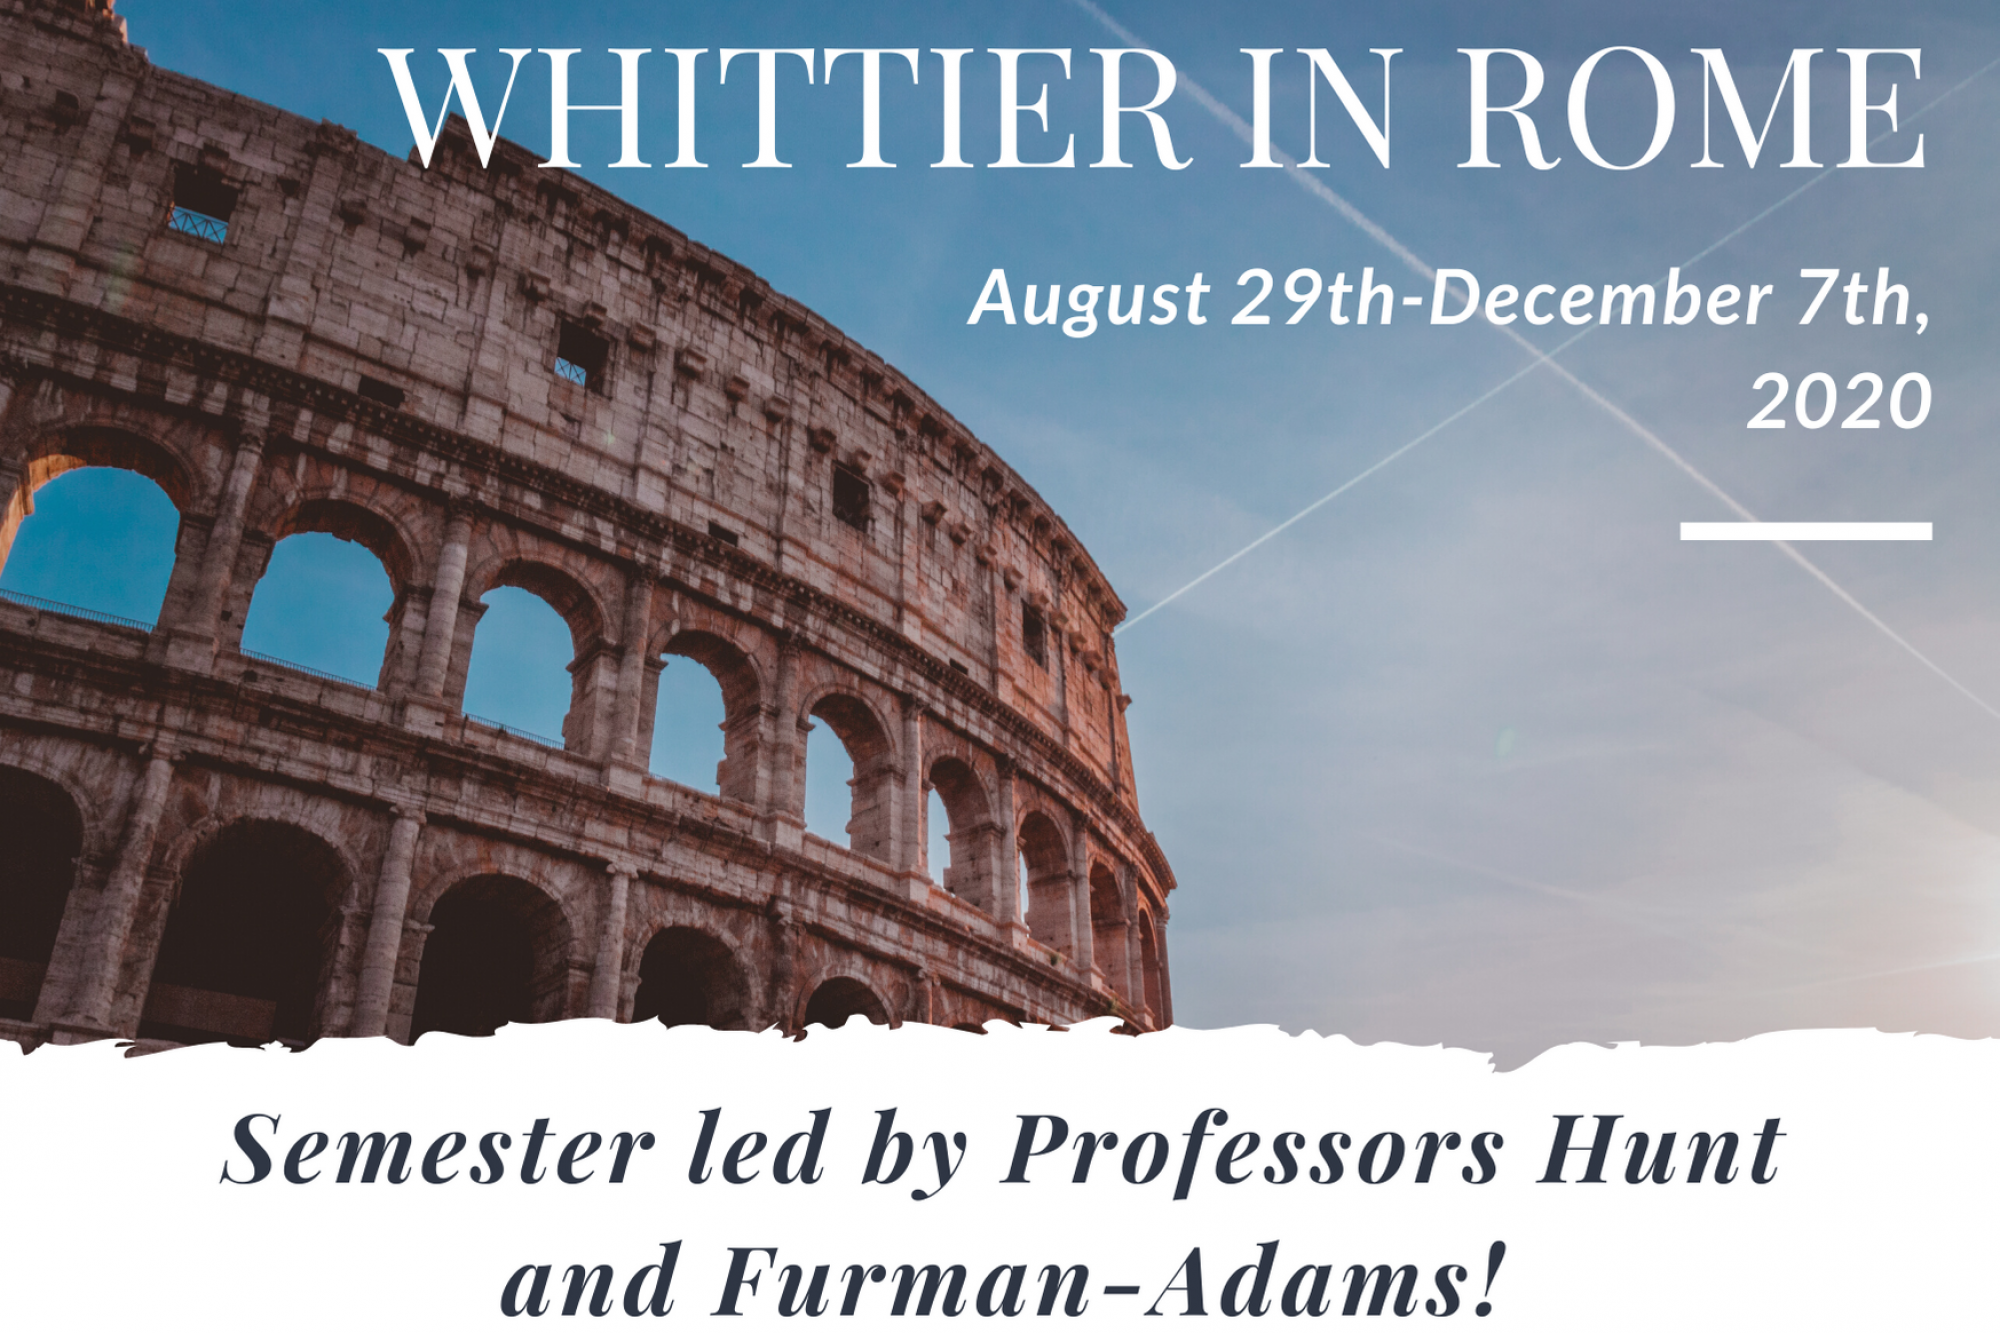 Whittier College Study Abroad